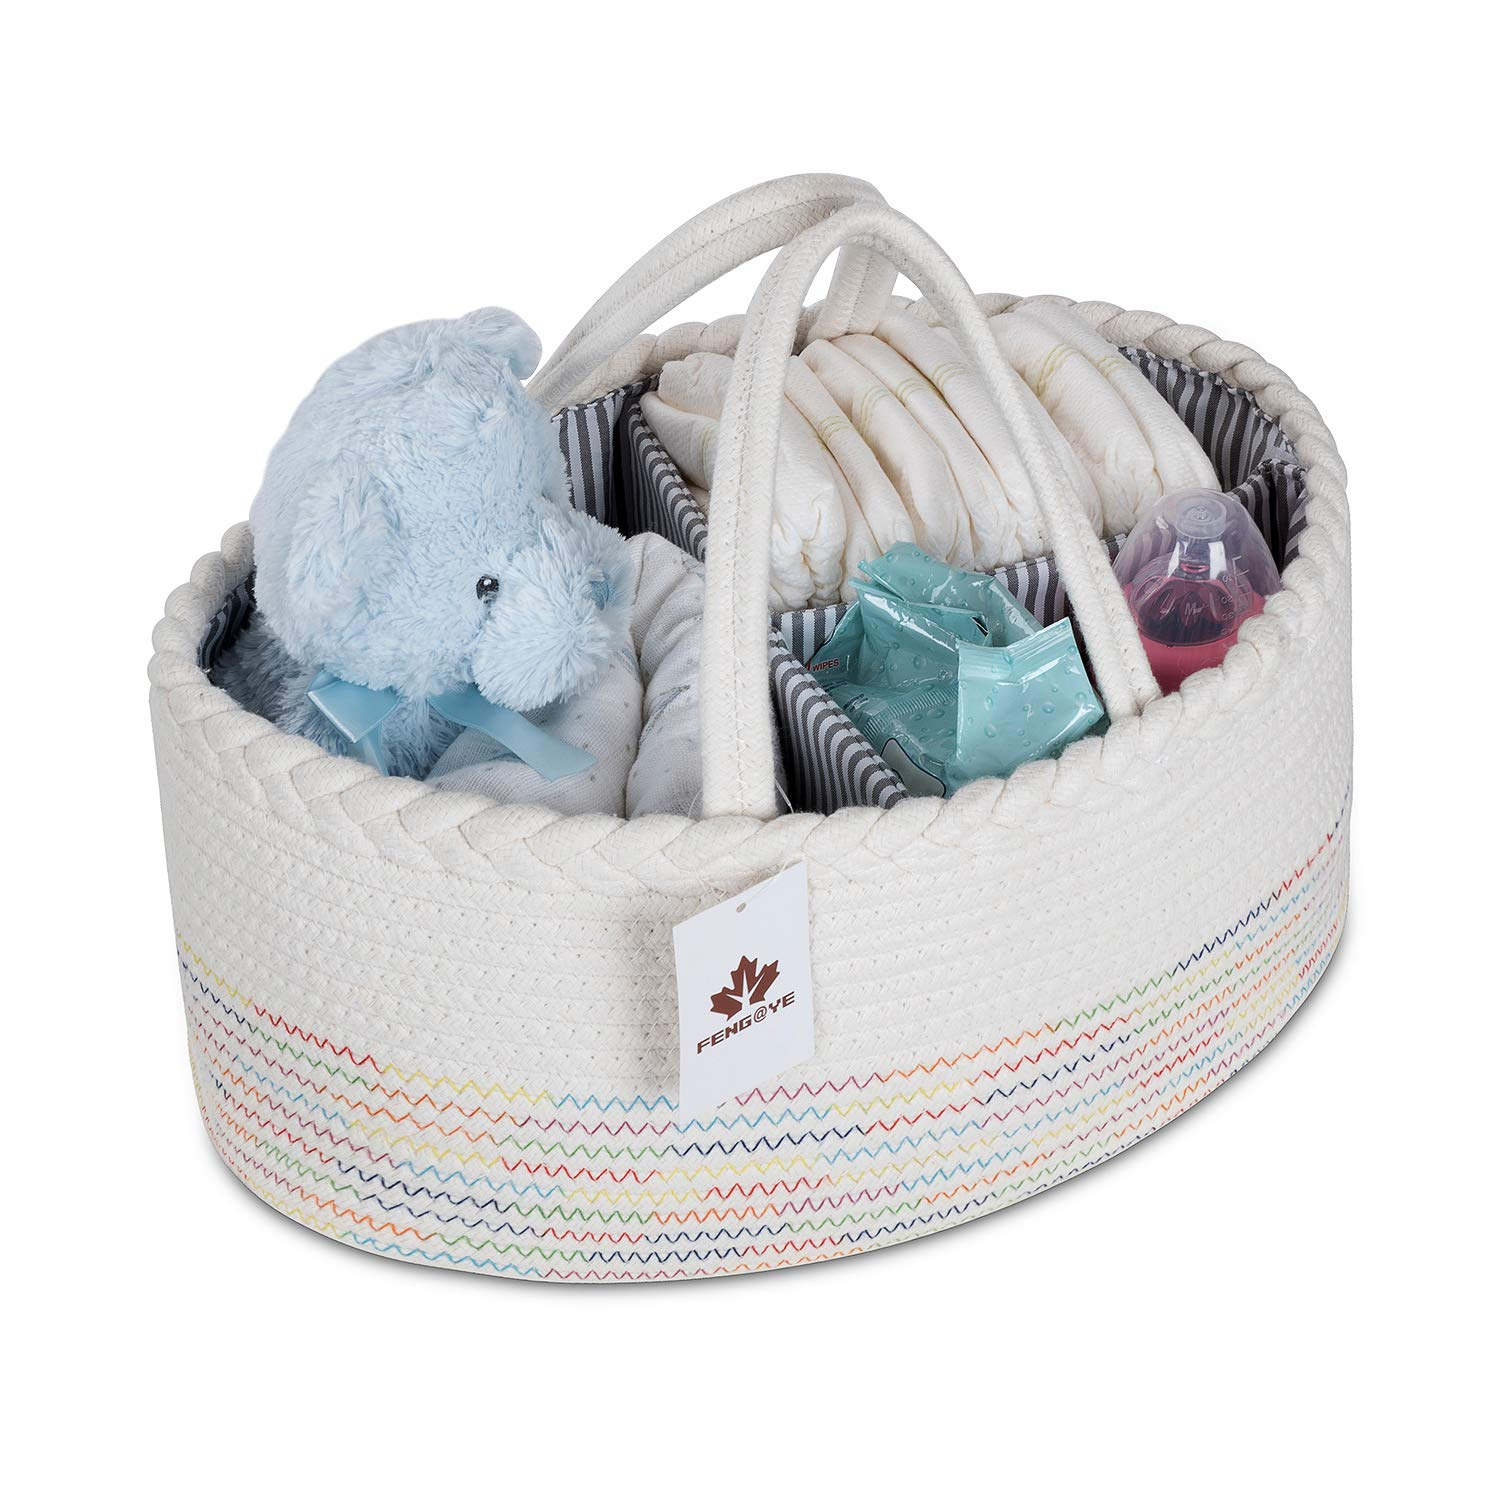 Large Baby Diaper Caddy Organizer-Woven Cotton Rope Basket Rainbow Nursery Storage Bin Portable for Changing Table/Car Travel Bag Tote-Newborn Registry Must Have-Baby Shower Gift Basket for Boy Girl